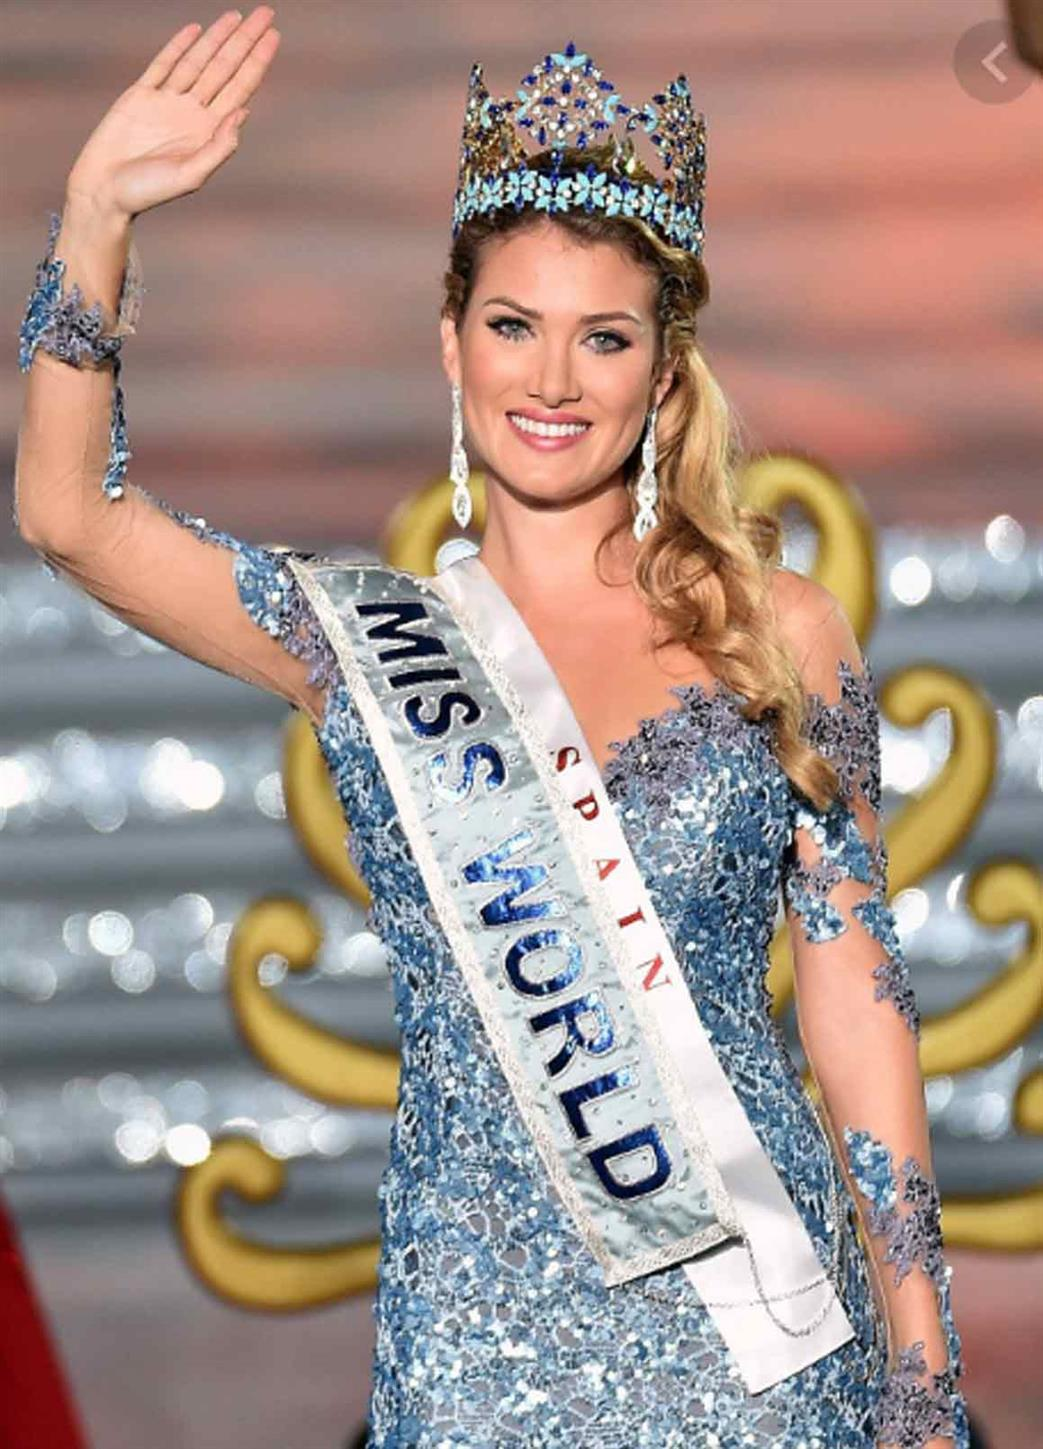 Mireia Lalaguna from Spain was crowned Miss World 2015